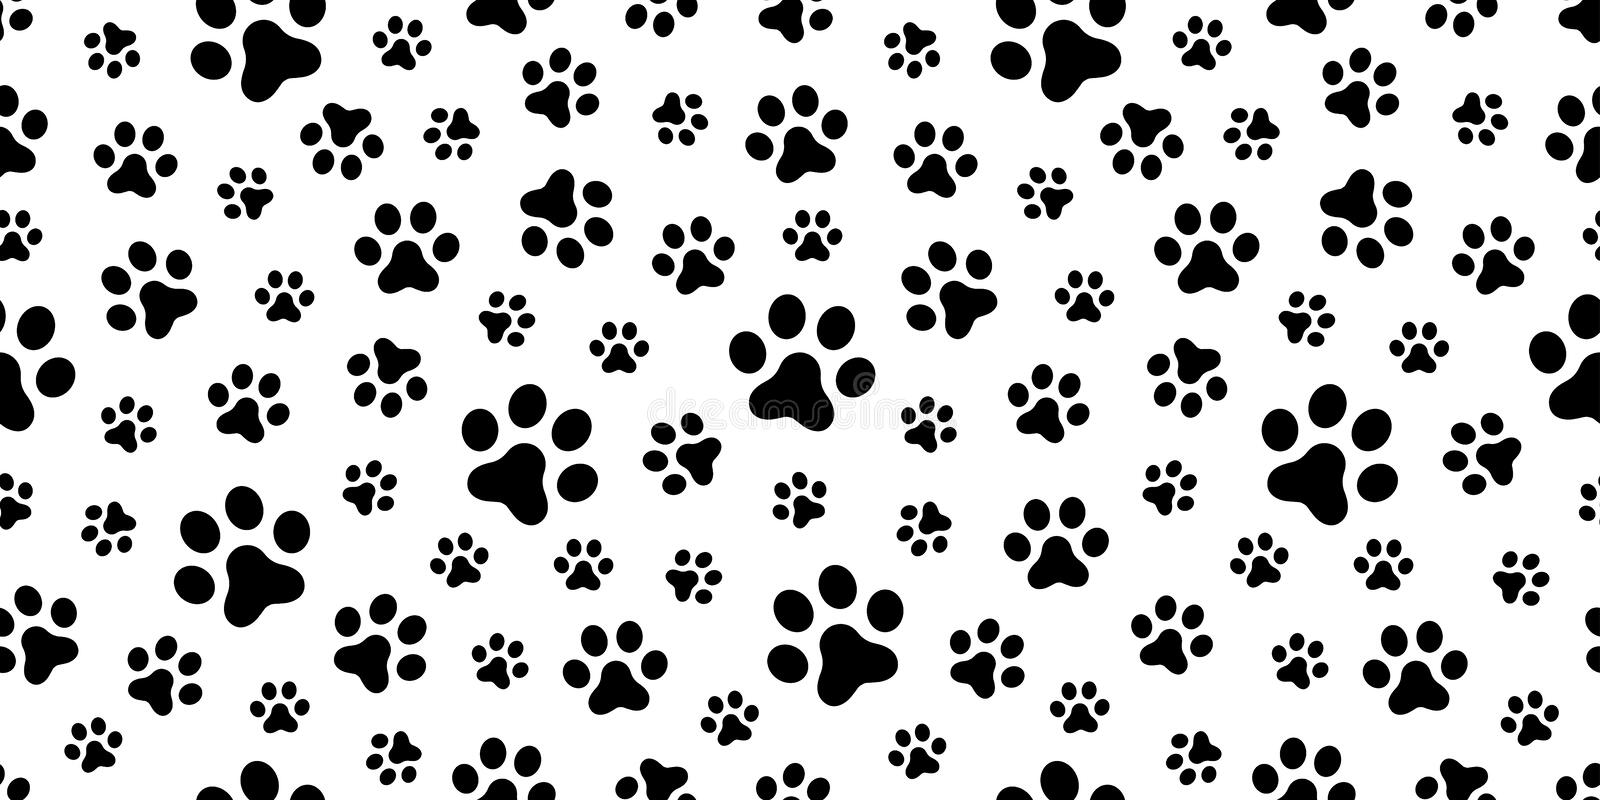 Dog Paw Seamless Pattern vector Cat paw foot print isolated wallpaper background. Dog Paw Seamless Pattern vector Cat paw foot print isolated wallpaper tile vector illustration